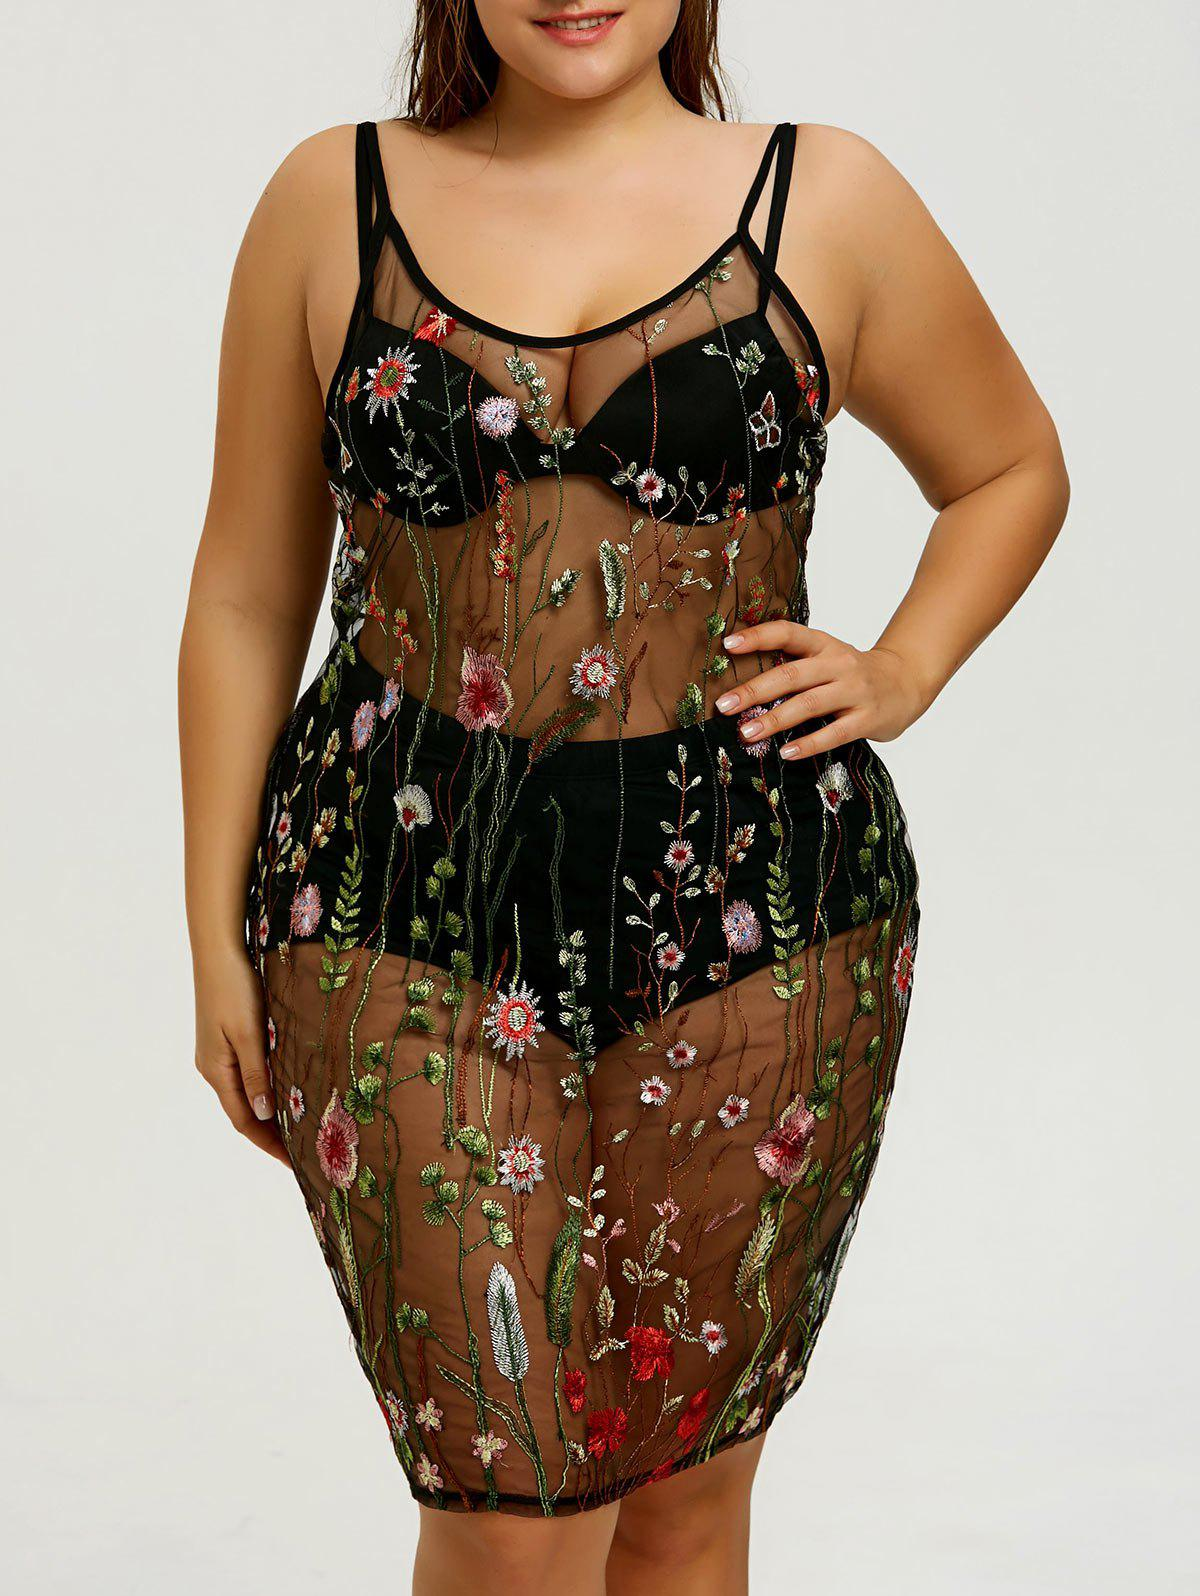 Plus Size Sheer Embroidered Slip Cover-up Dress - COLORMIX XL